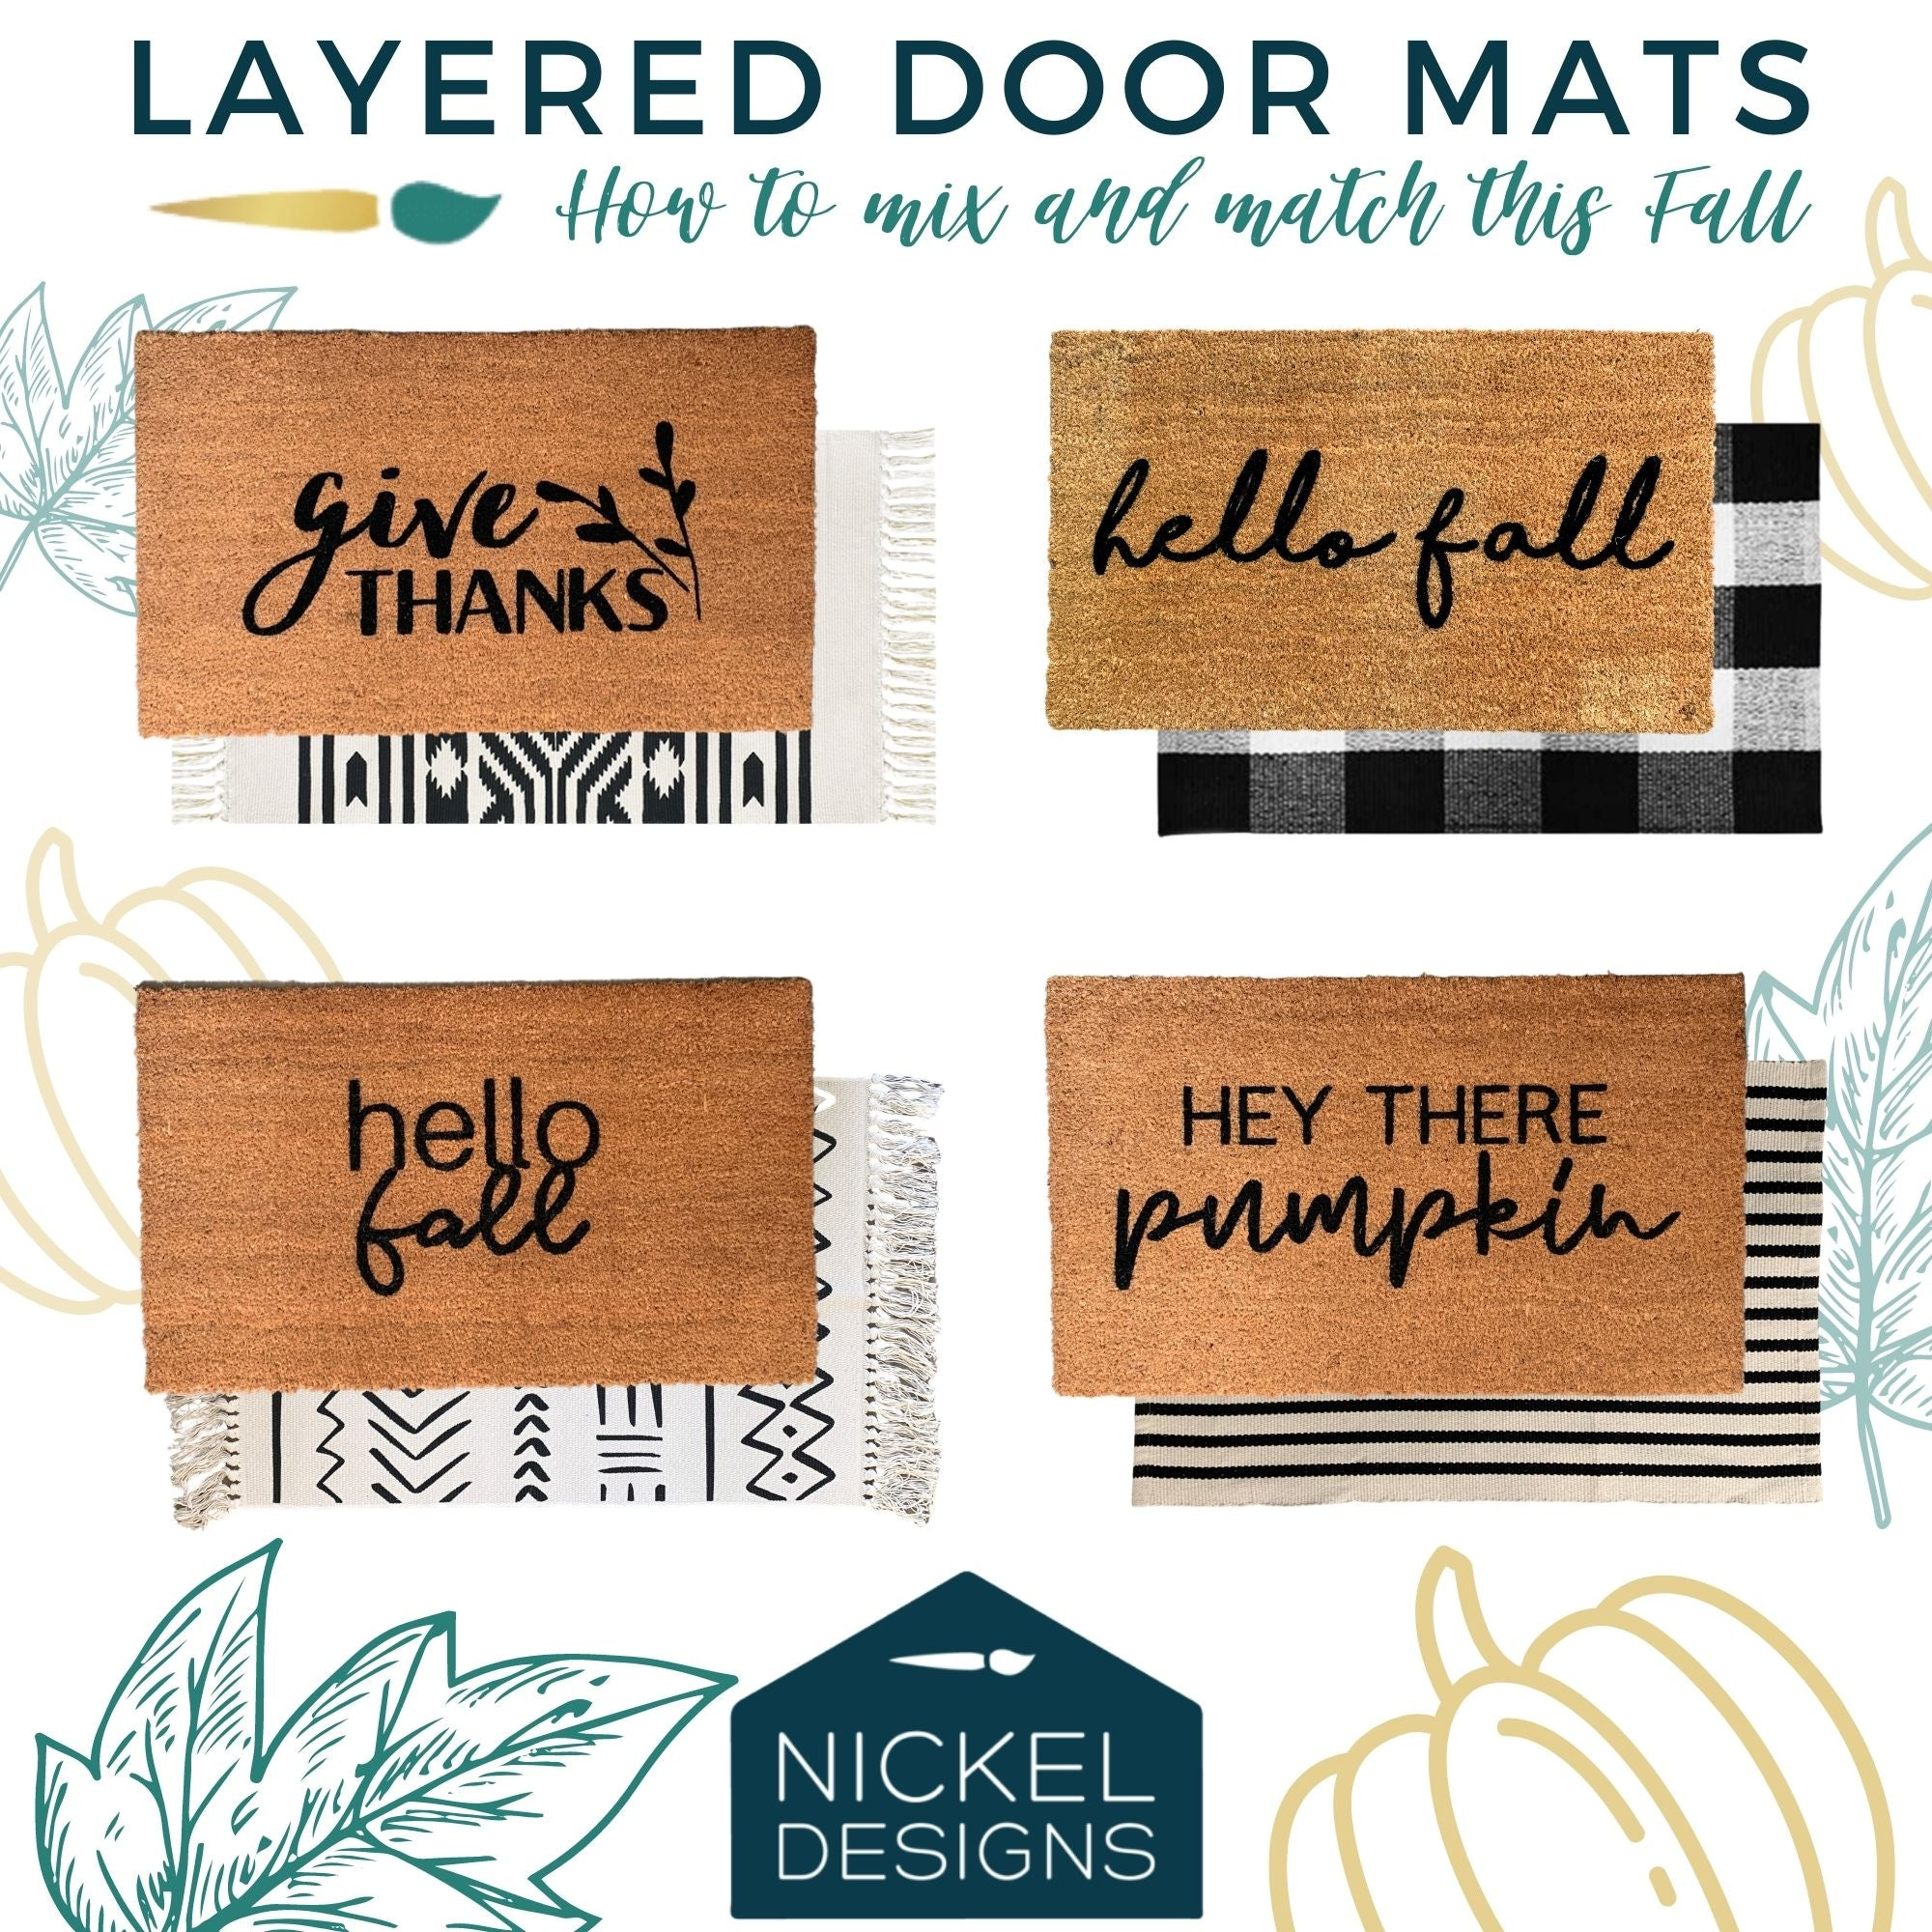 Easy fall porch update! Layer your doormat this fall.